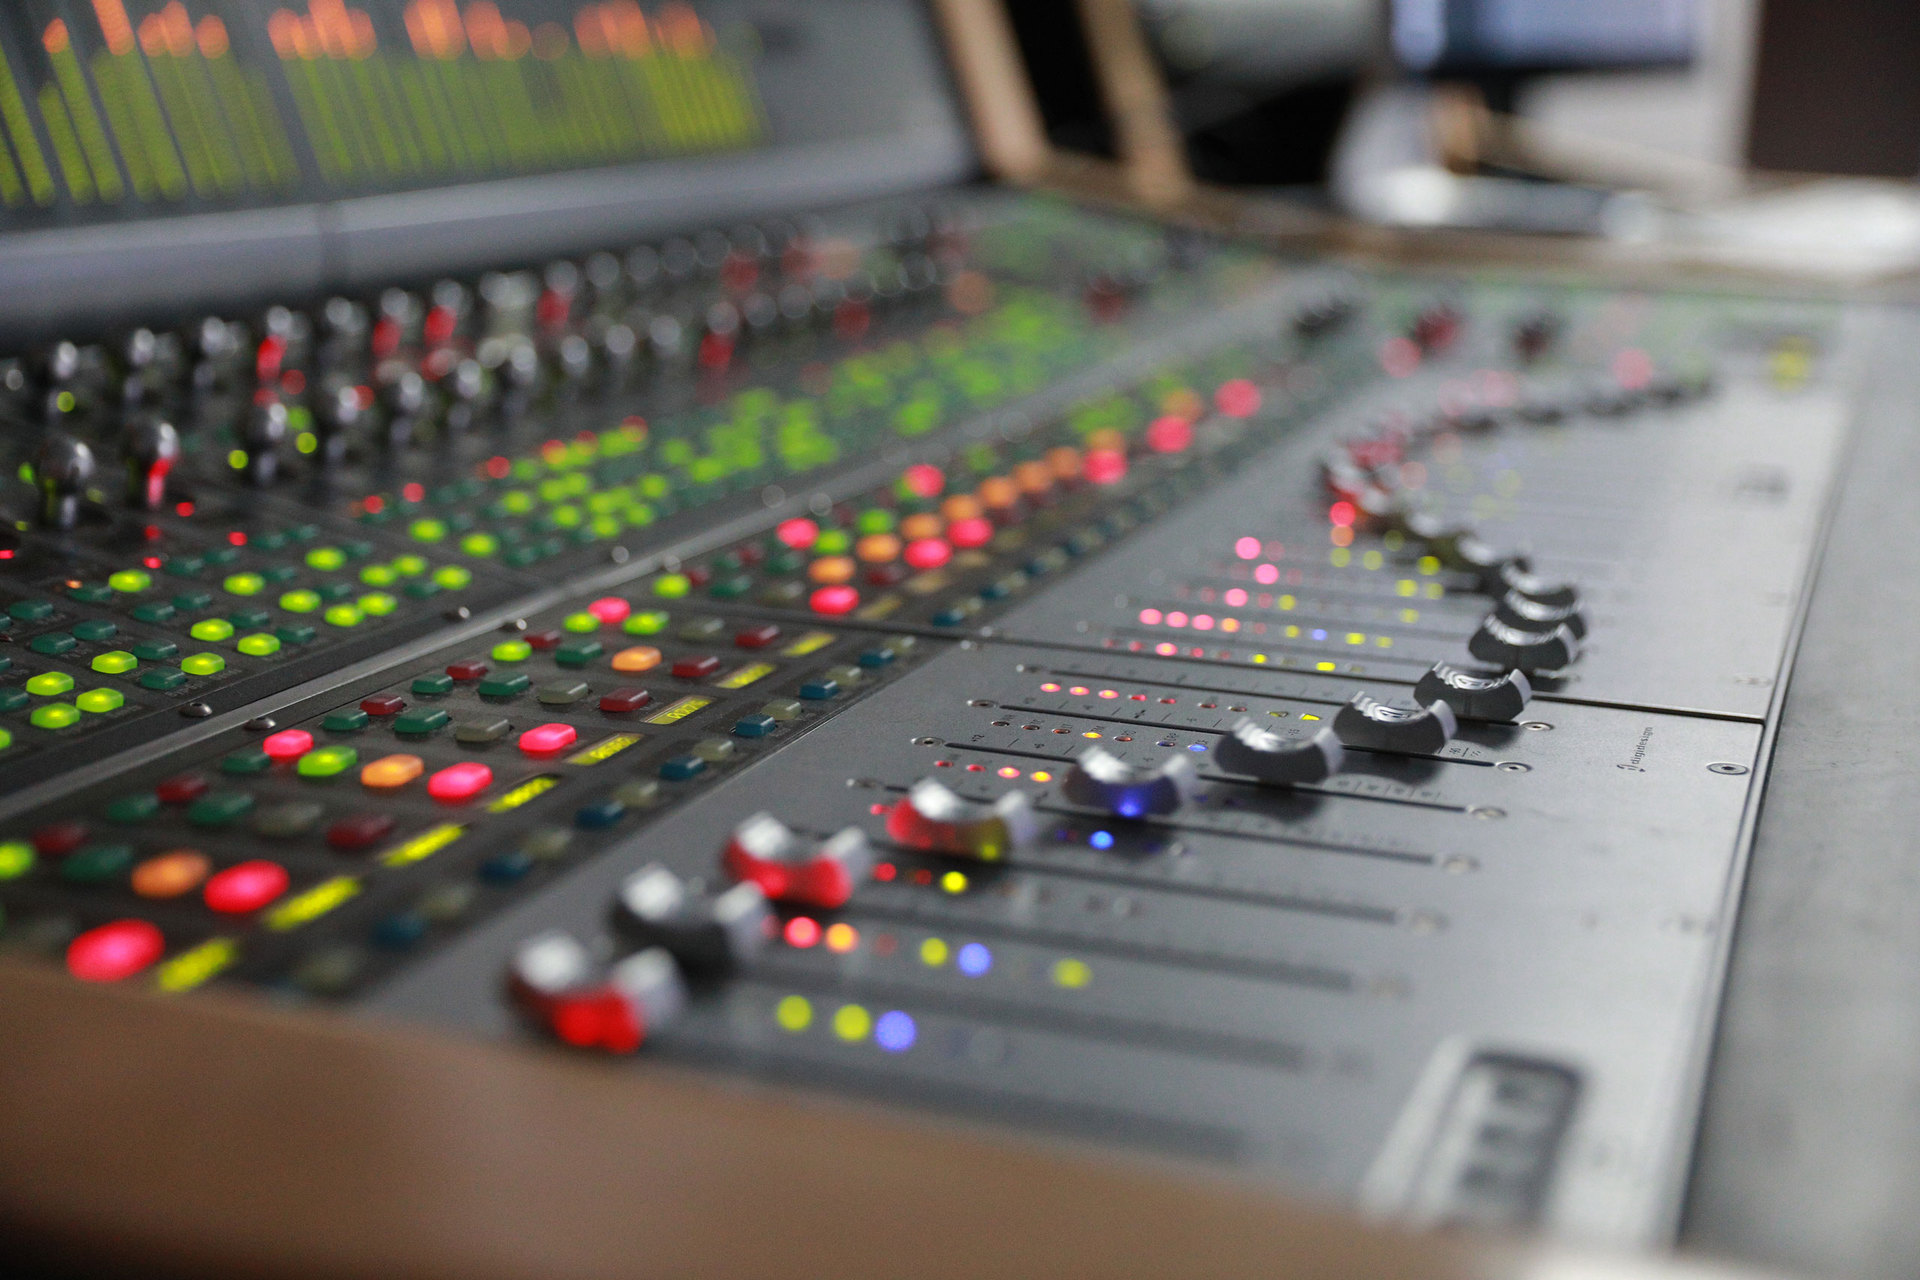 Music Production & Sound Design for Visual Media